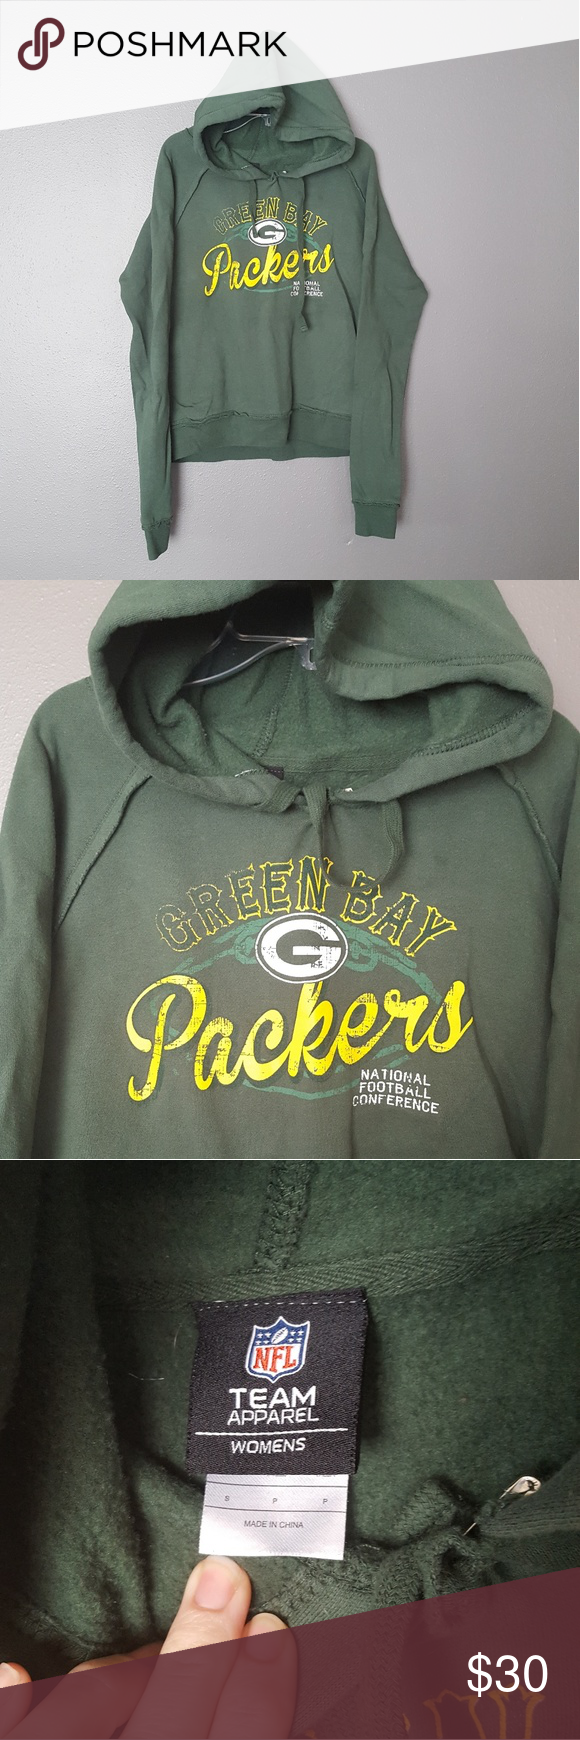 04b2371b NFL Team Apparell》Greenbay Packers Hoodie Worn once, washed once ...